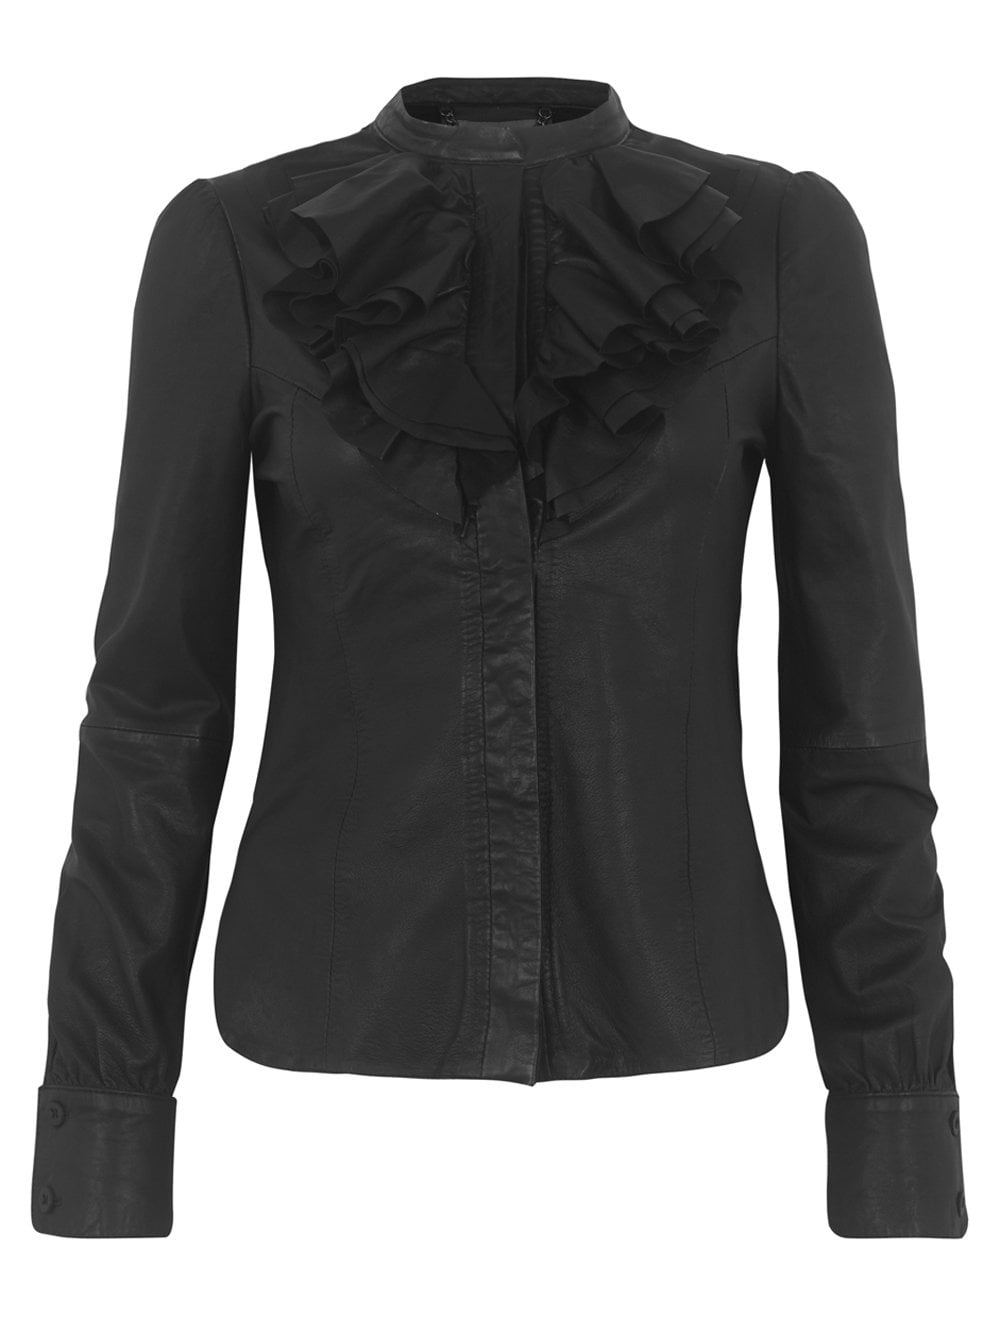 Leather Ruffle Blouse in Black